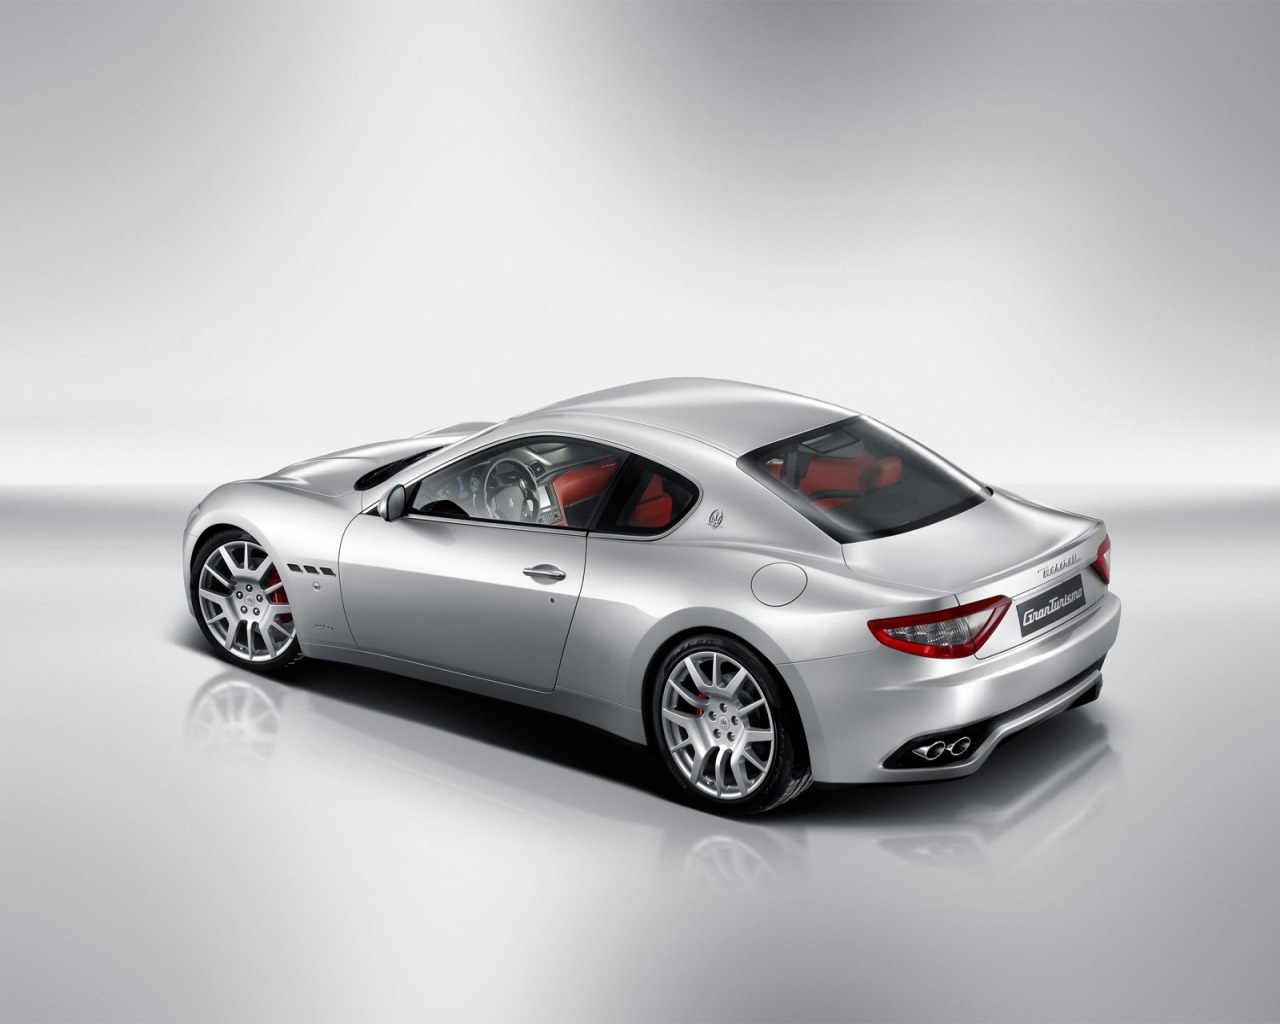 Maserati GranTurismo Rear and Side